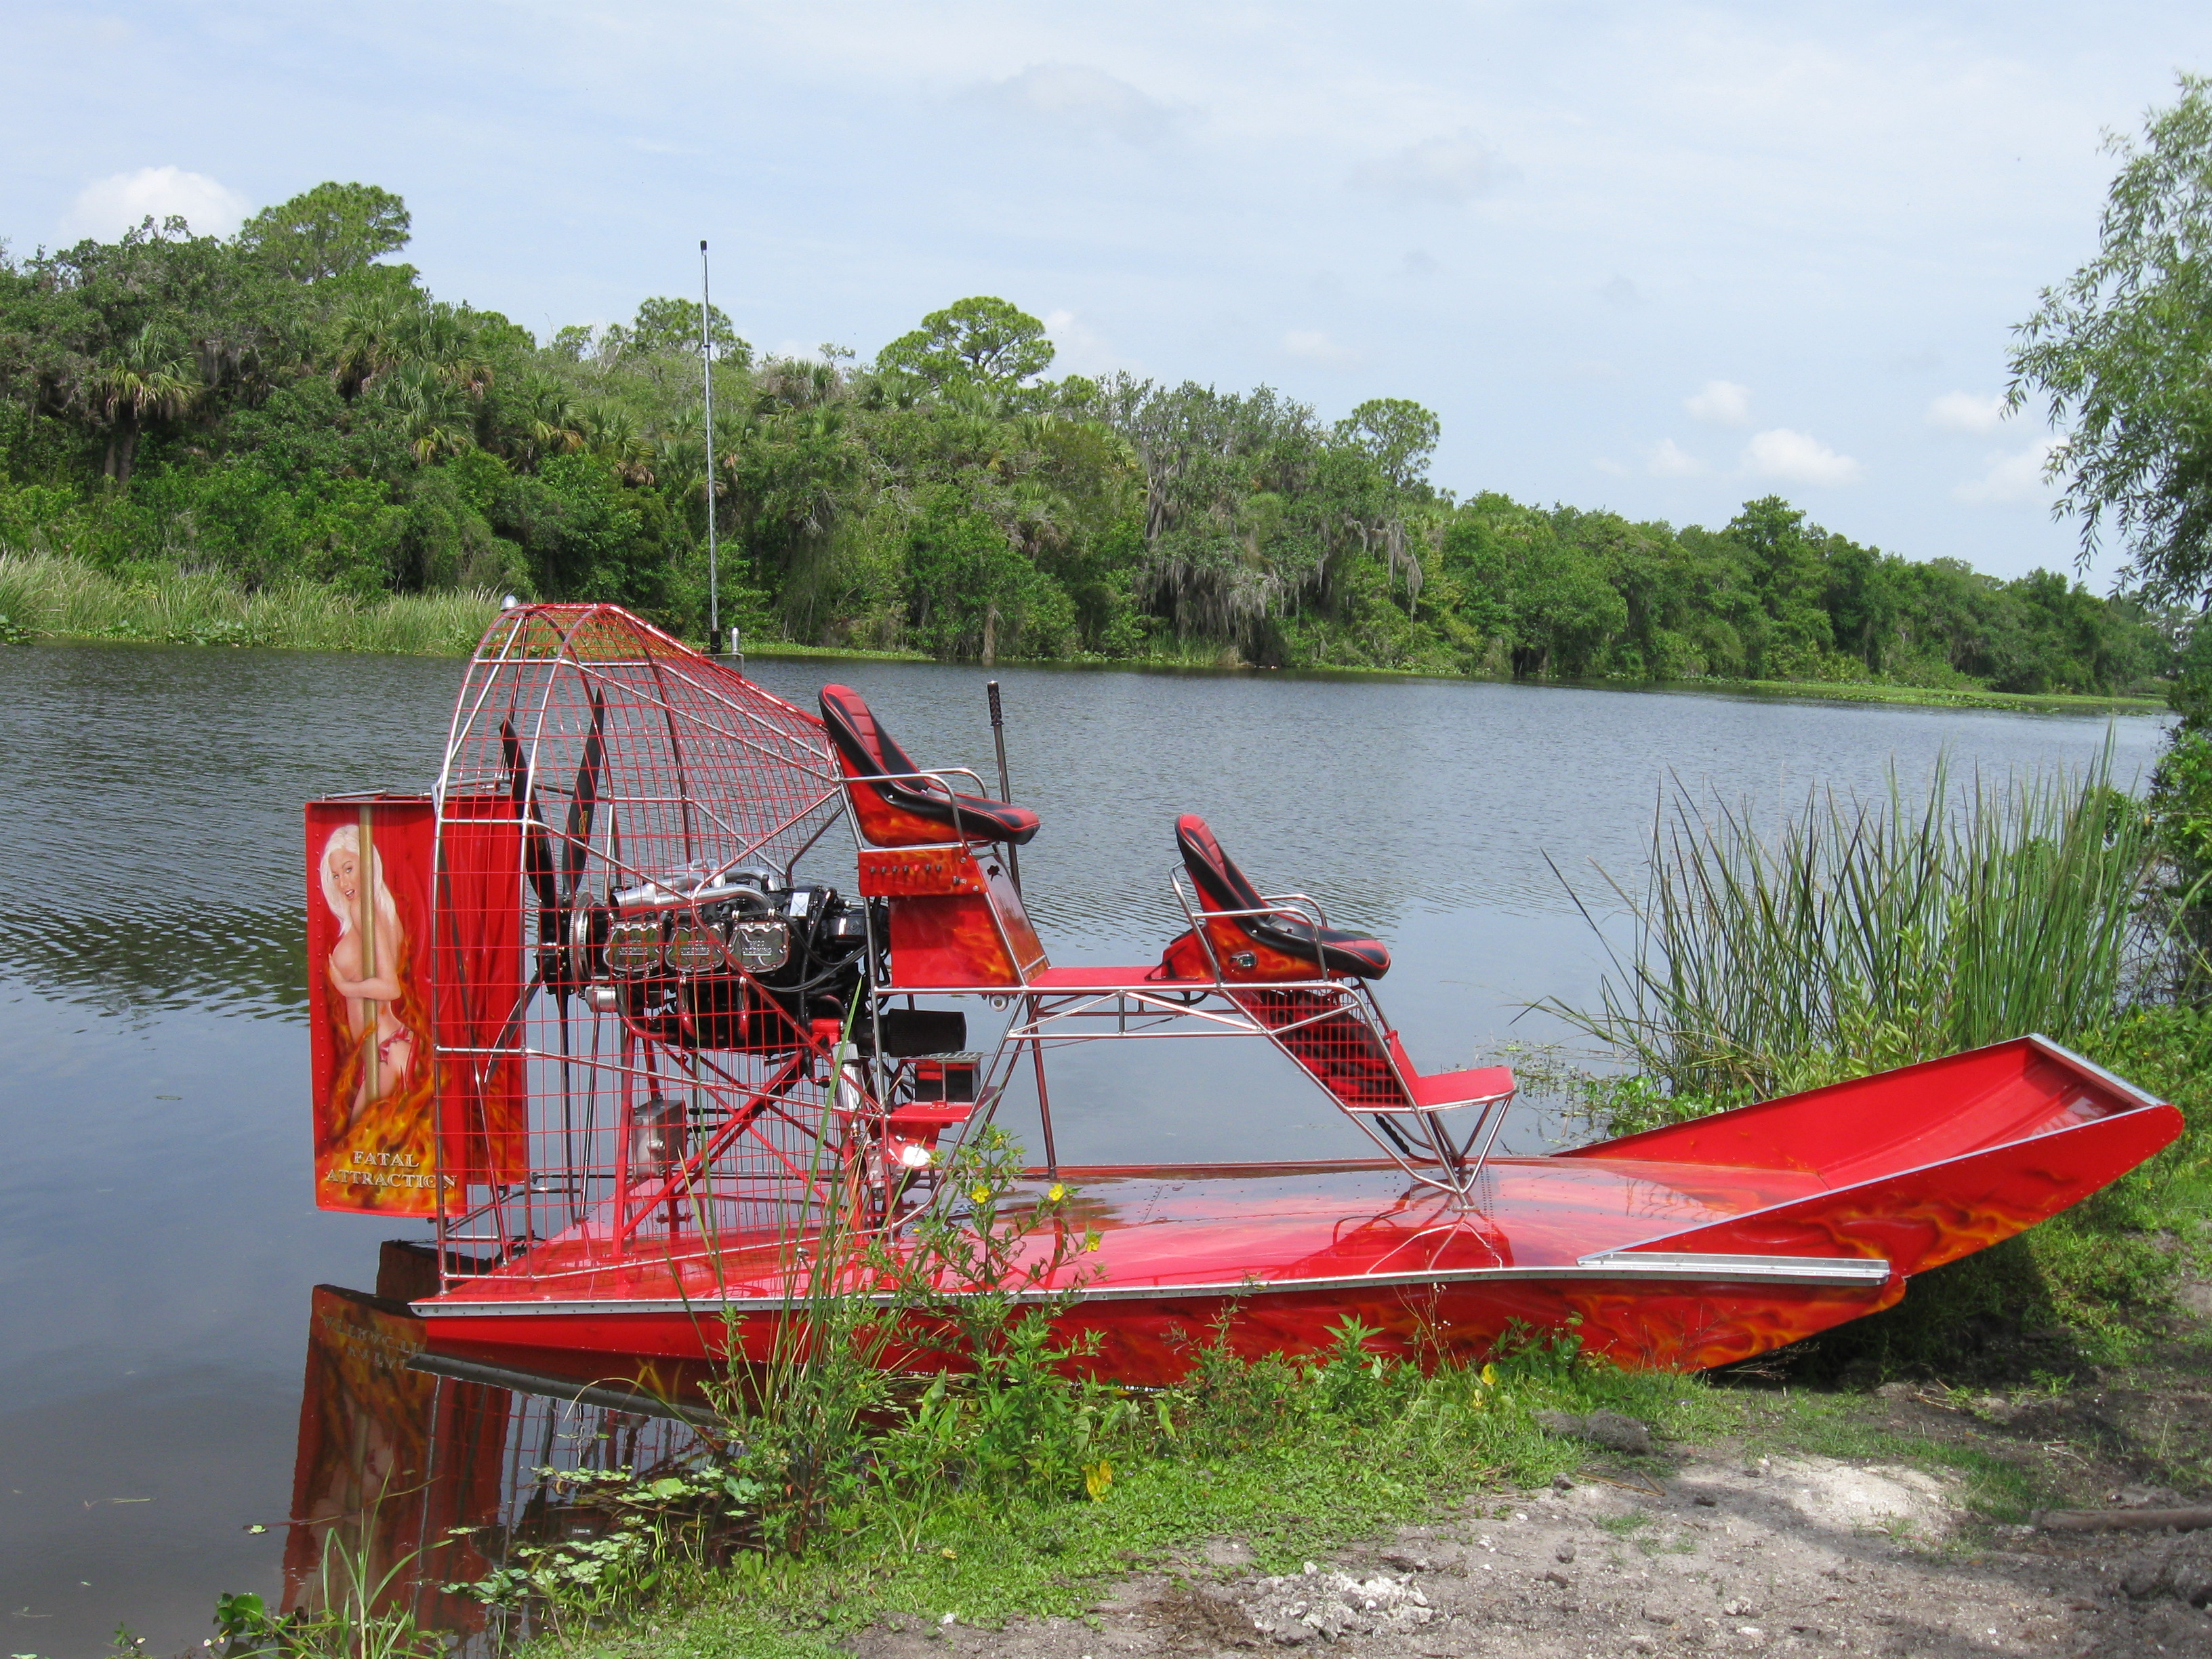 Southern airboat sale / Pizza richmond virginia